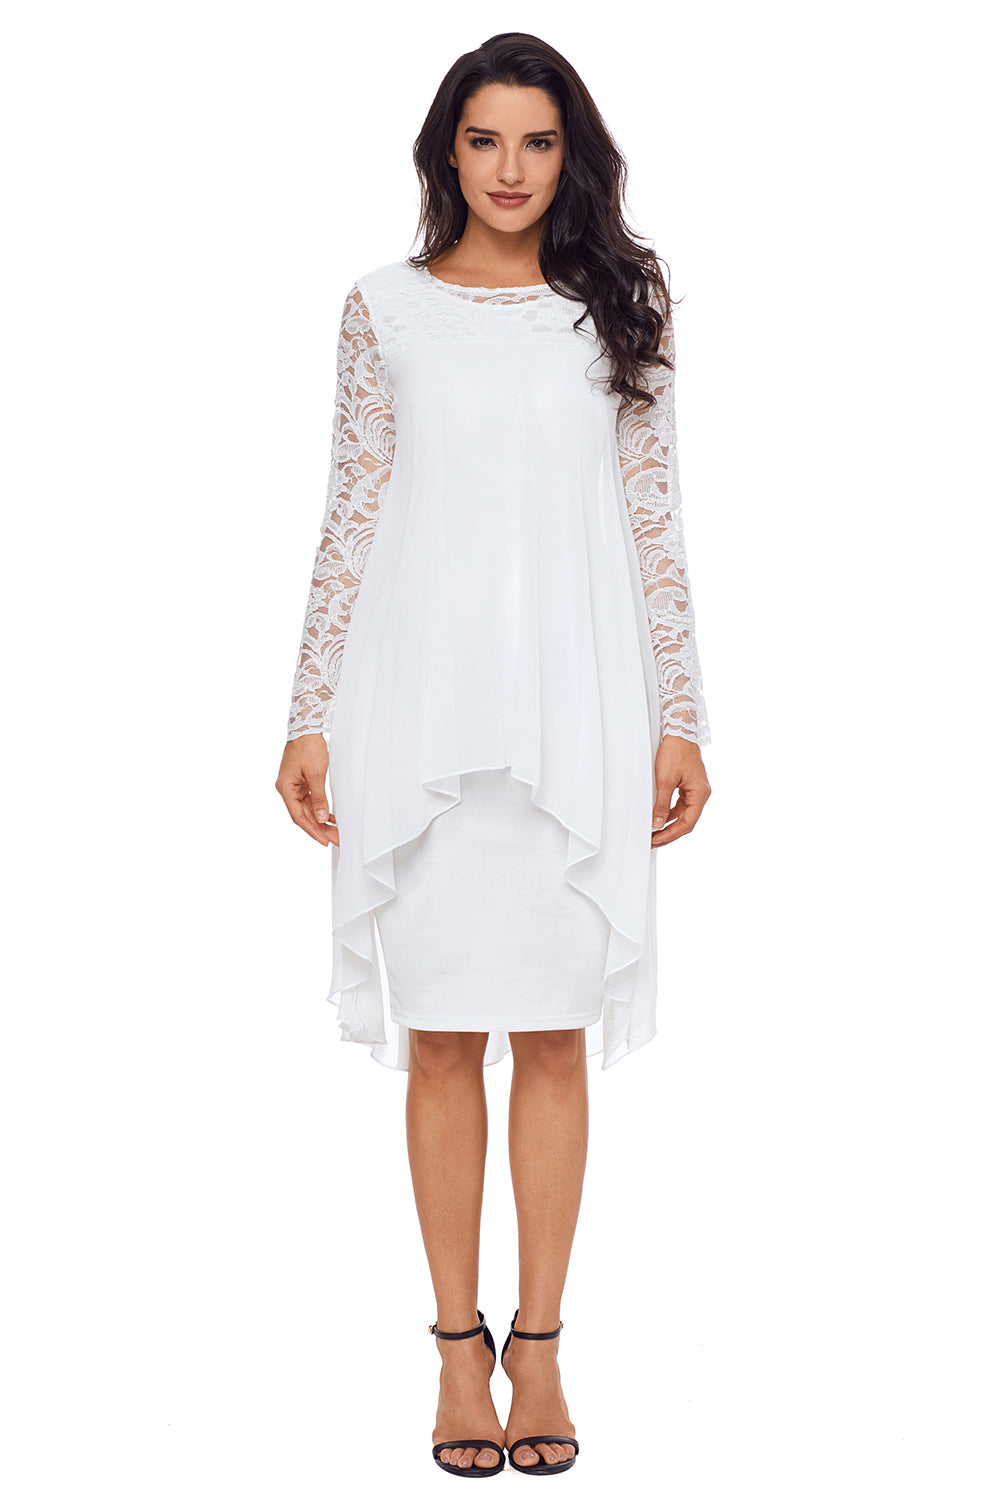 Her Bodycon Stunning White Lace Long Sleeve Double Layer Midi Dress